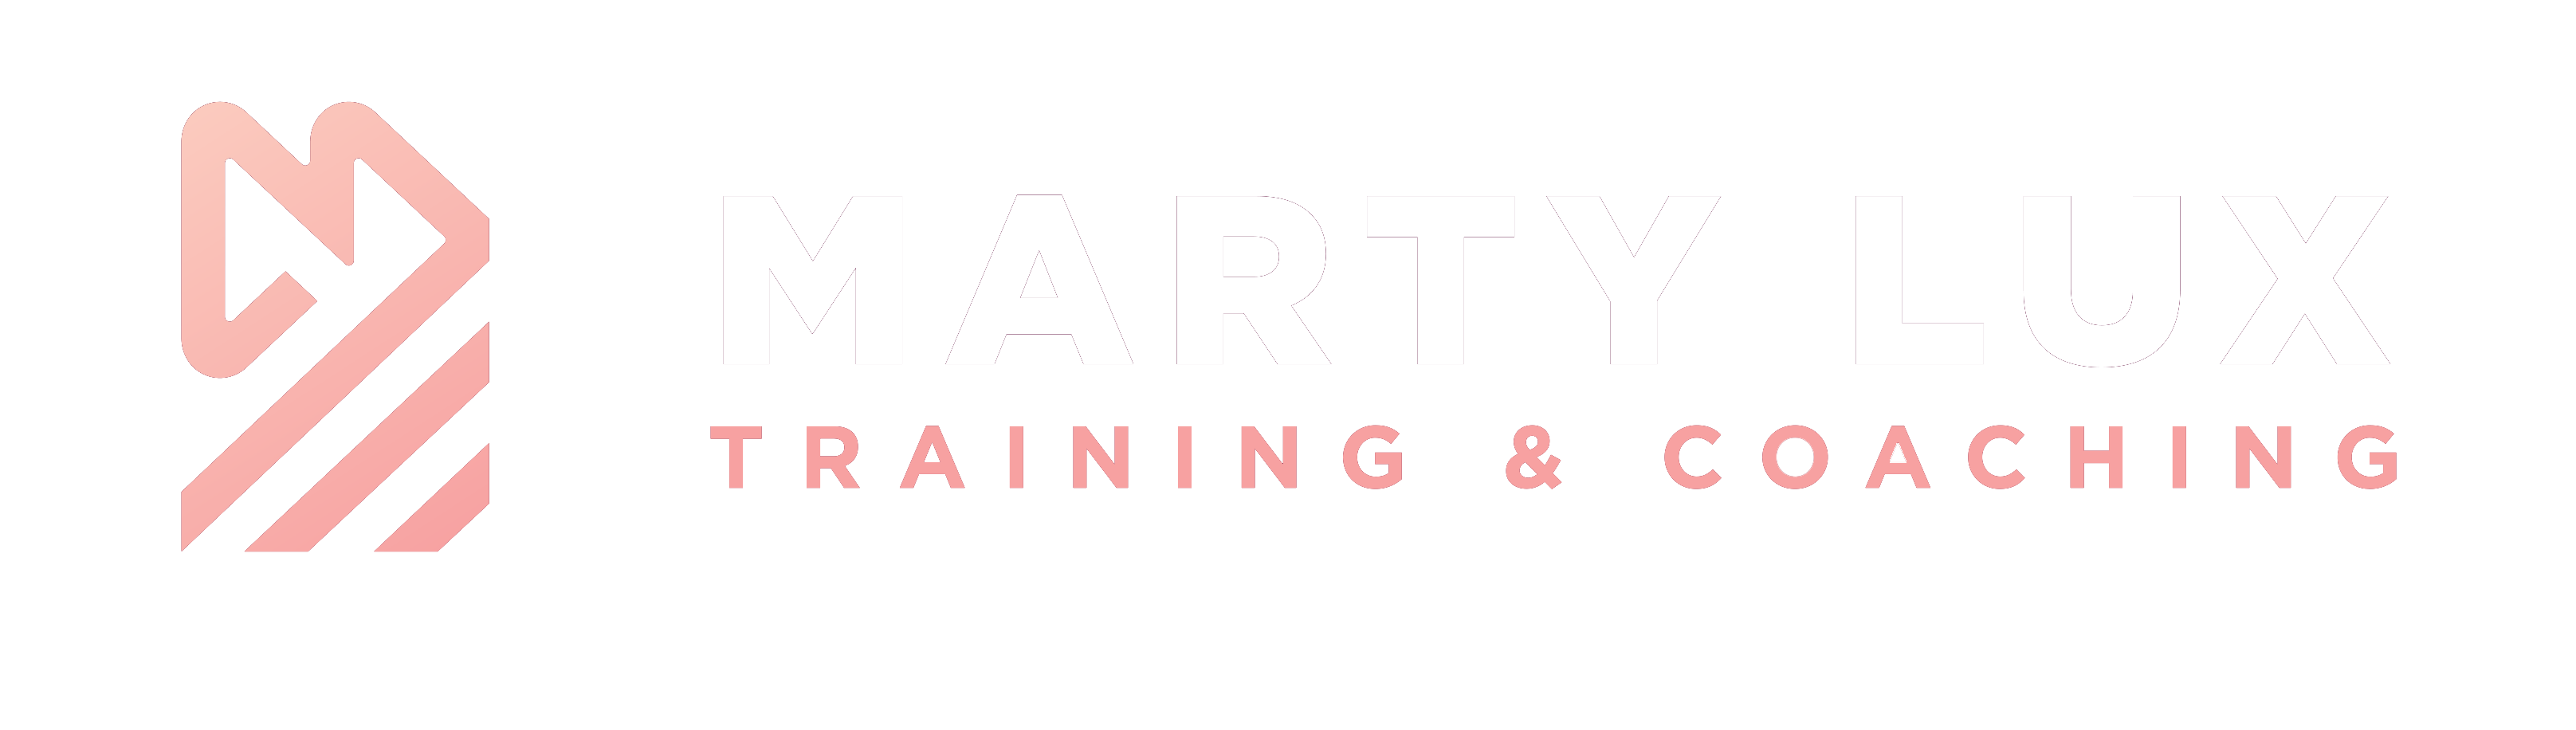 Marty Lux Training & Coaching